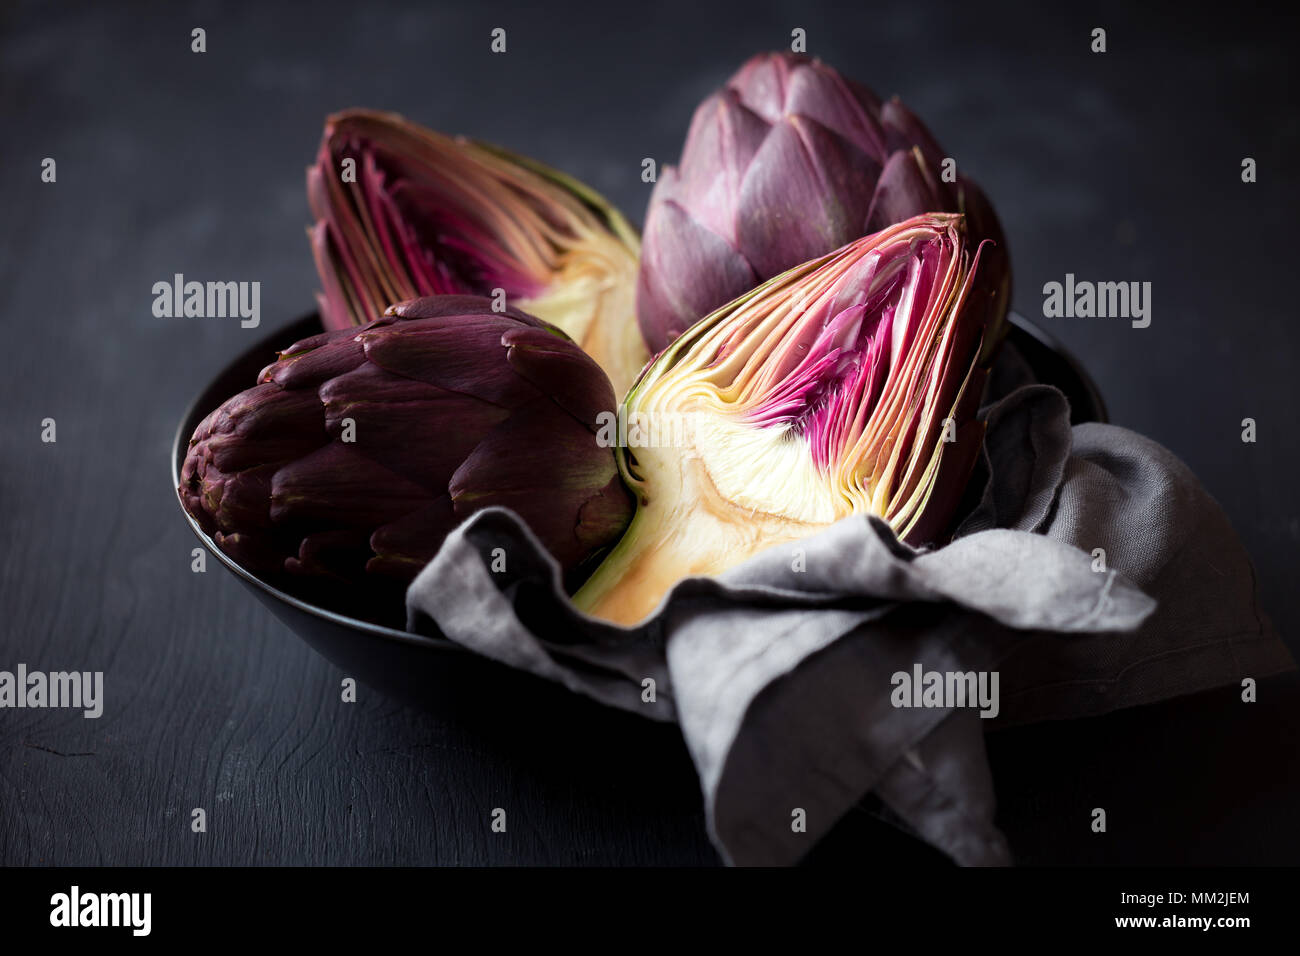 Fresh ripe artichokes in a bowl against black wooden background - Stock Image